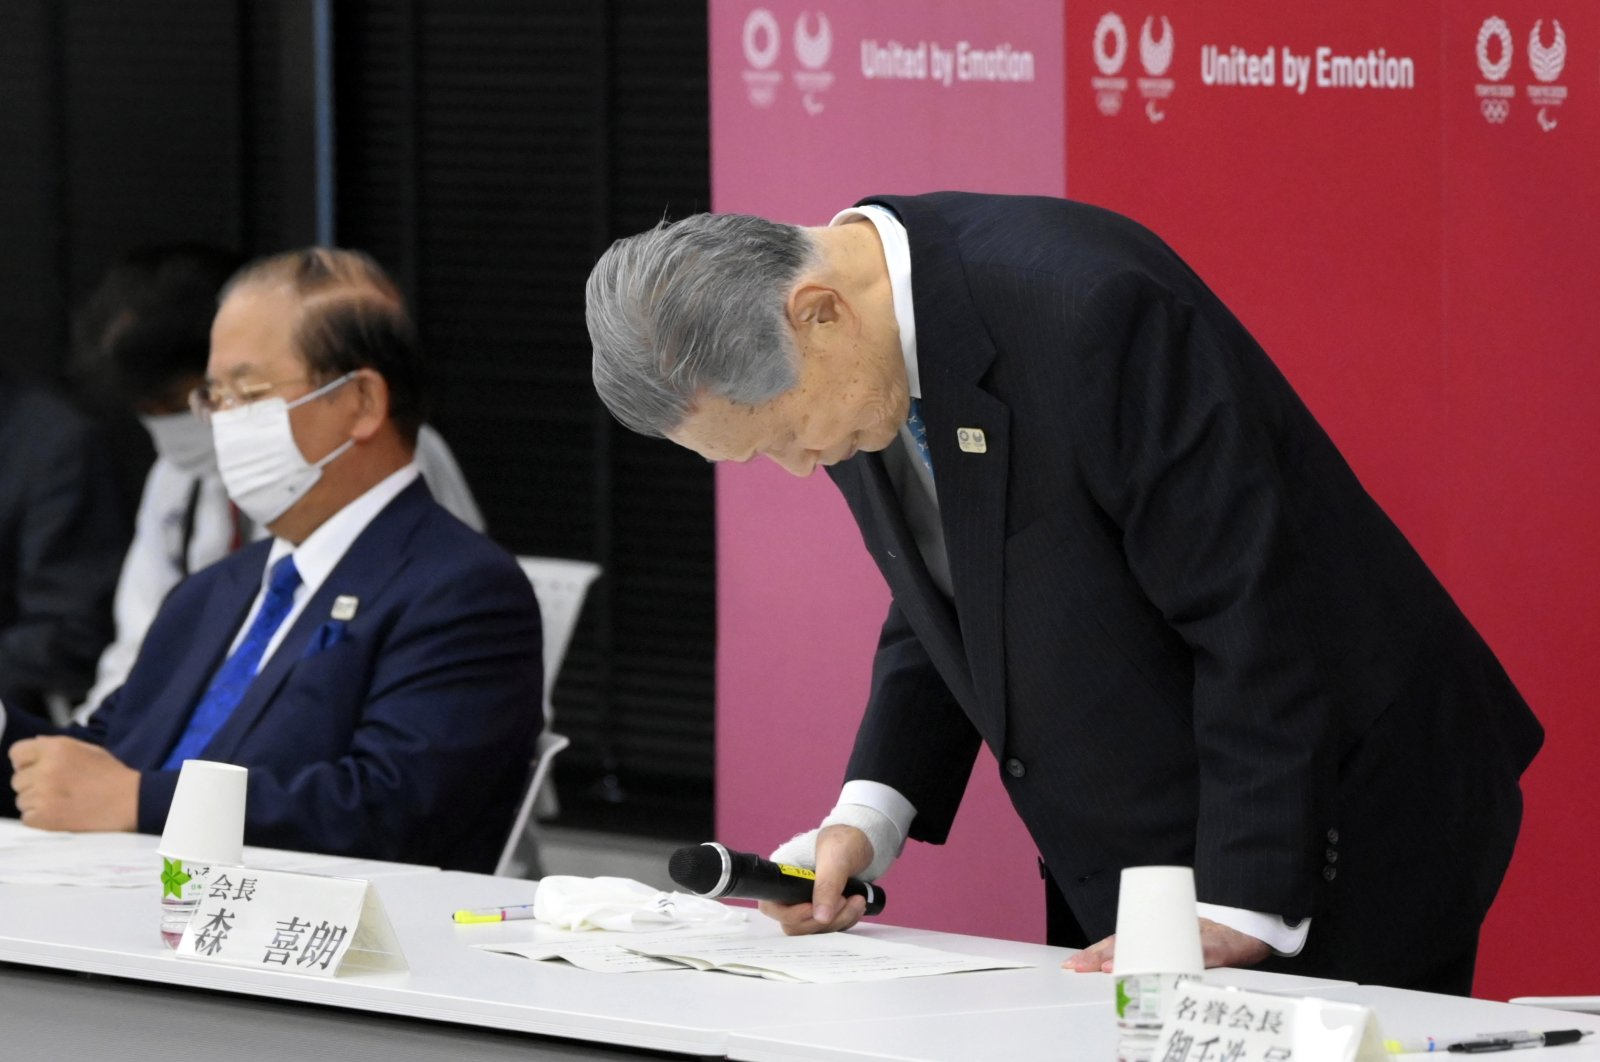 Tokyo 2020 Olympics Organizing Committee President Yoshiro Mori (R) bows as he announces his resignation over his sexist remarks during a news conference in Tokyo, Japan, Feb. 12,  2021. (EPA Photo)